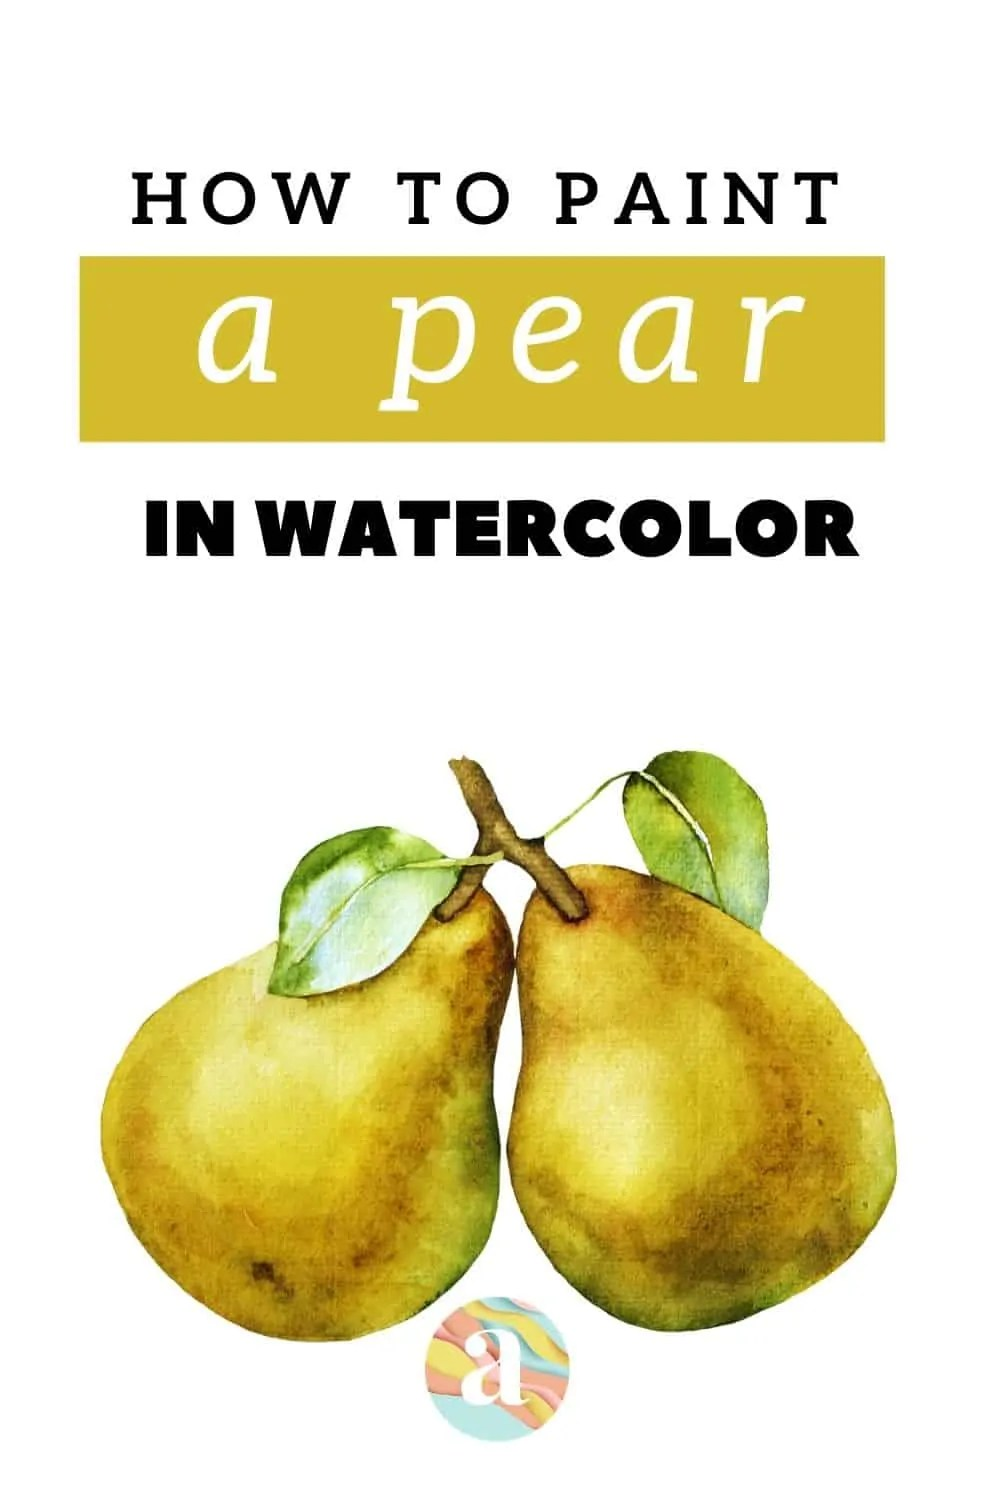 10 Ideas for Your Next Watercolor Painting 39